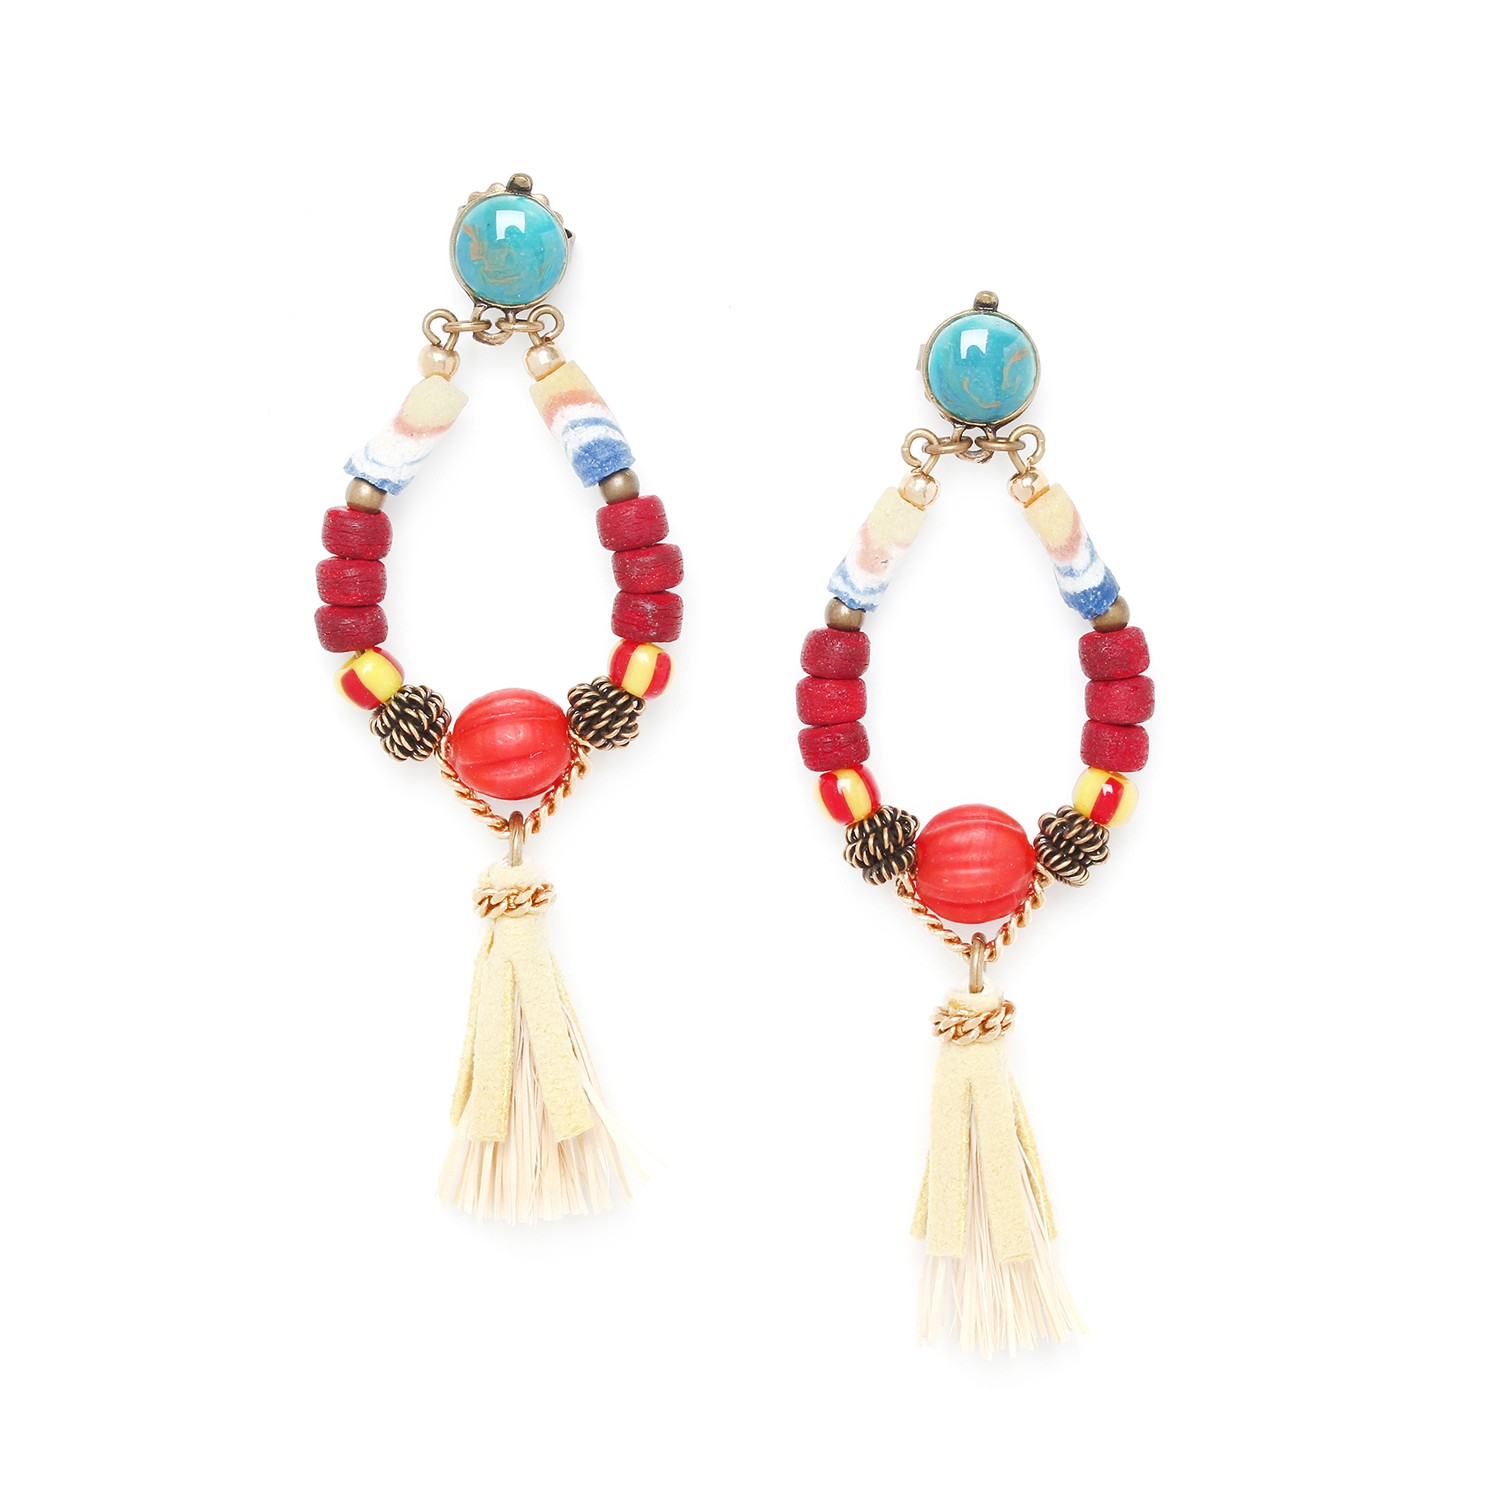 ULUWATU gypsy earrings